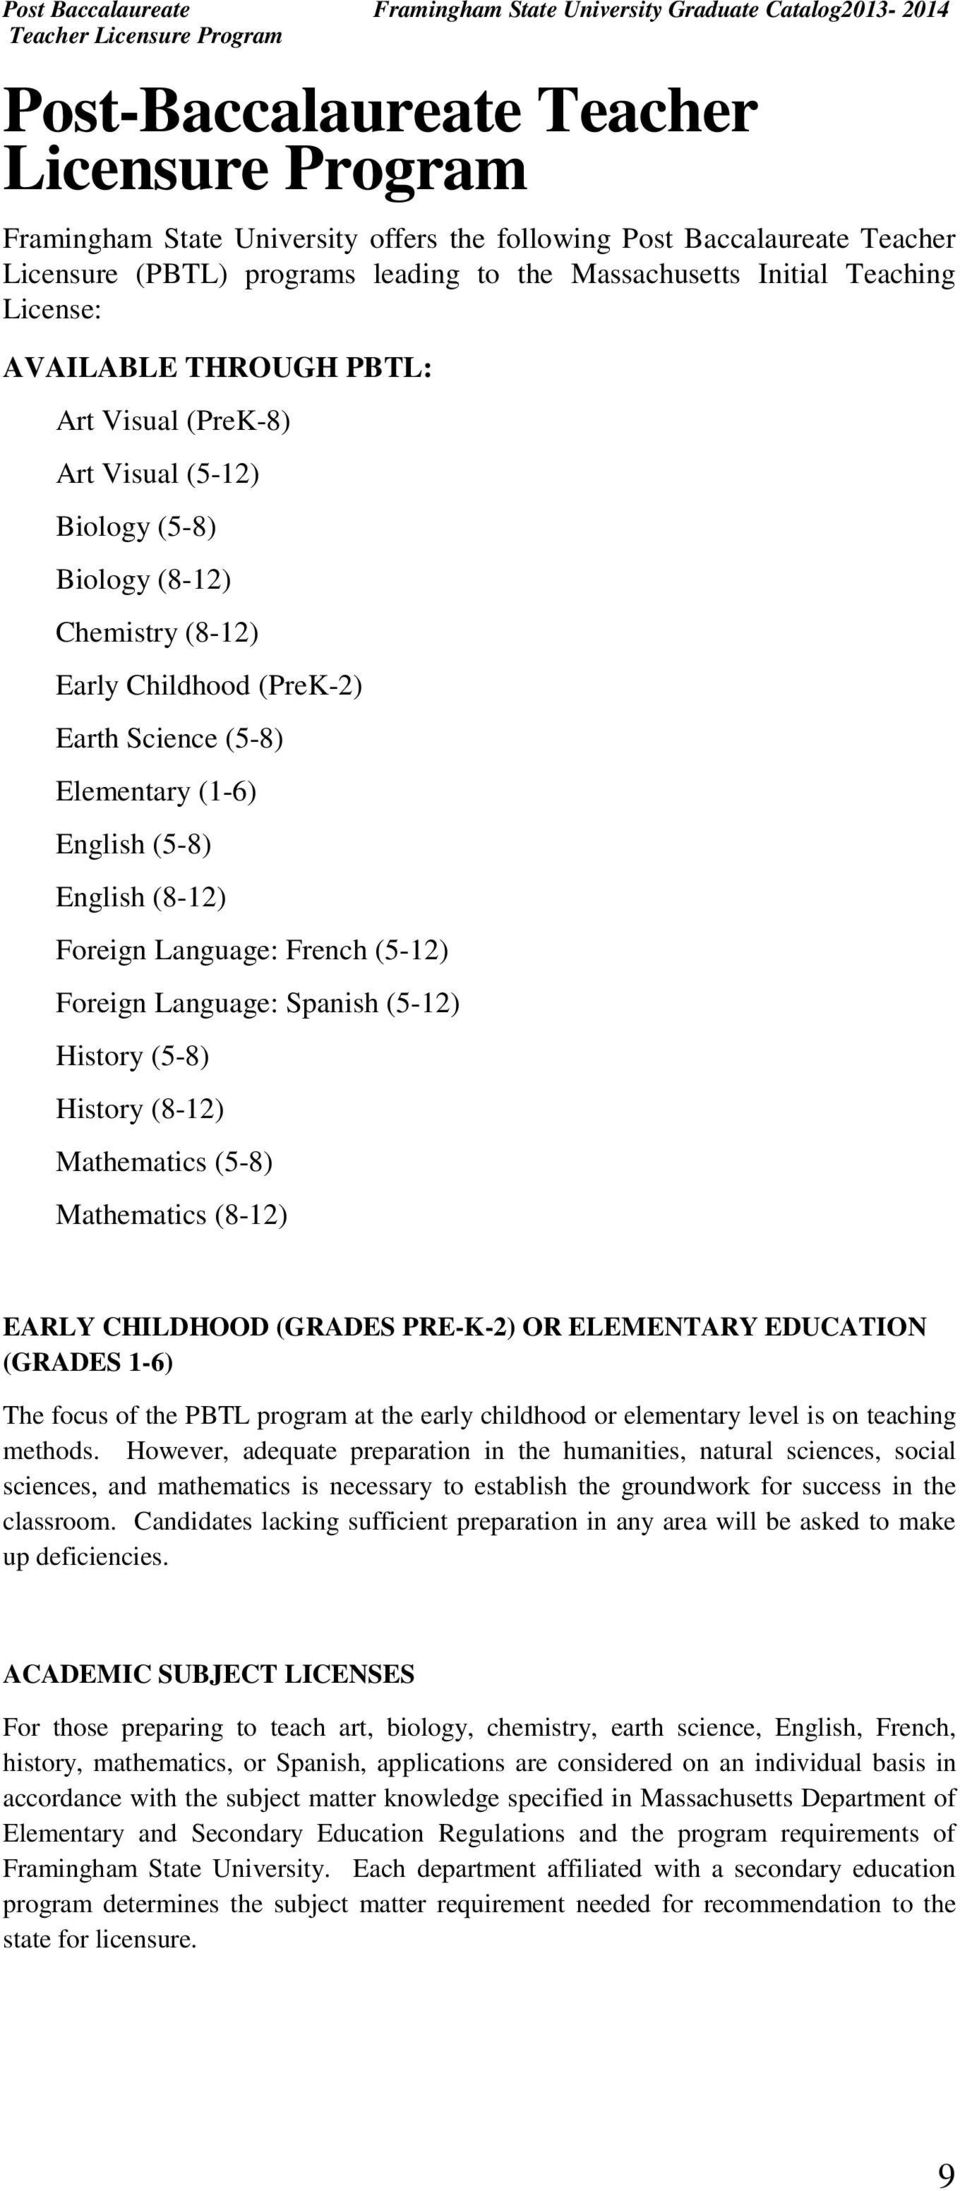 Chemistry (8-12) Early Childhood (PreK-2) Earth Science (5-8) Elementary (1-6) English (5-8) English (8-12) Foreign Language: French (5-12) Foreign Language: Spanish (5-12) History (5-8) History